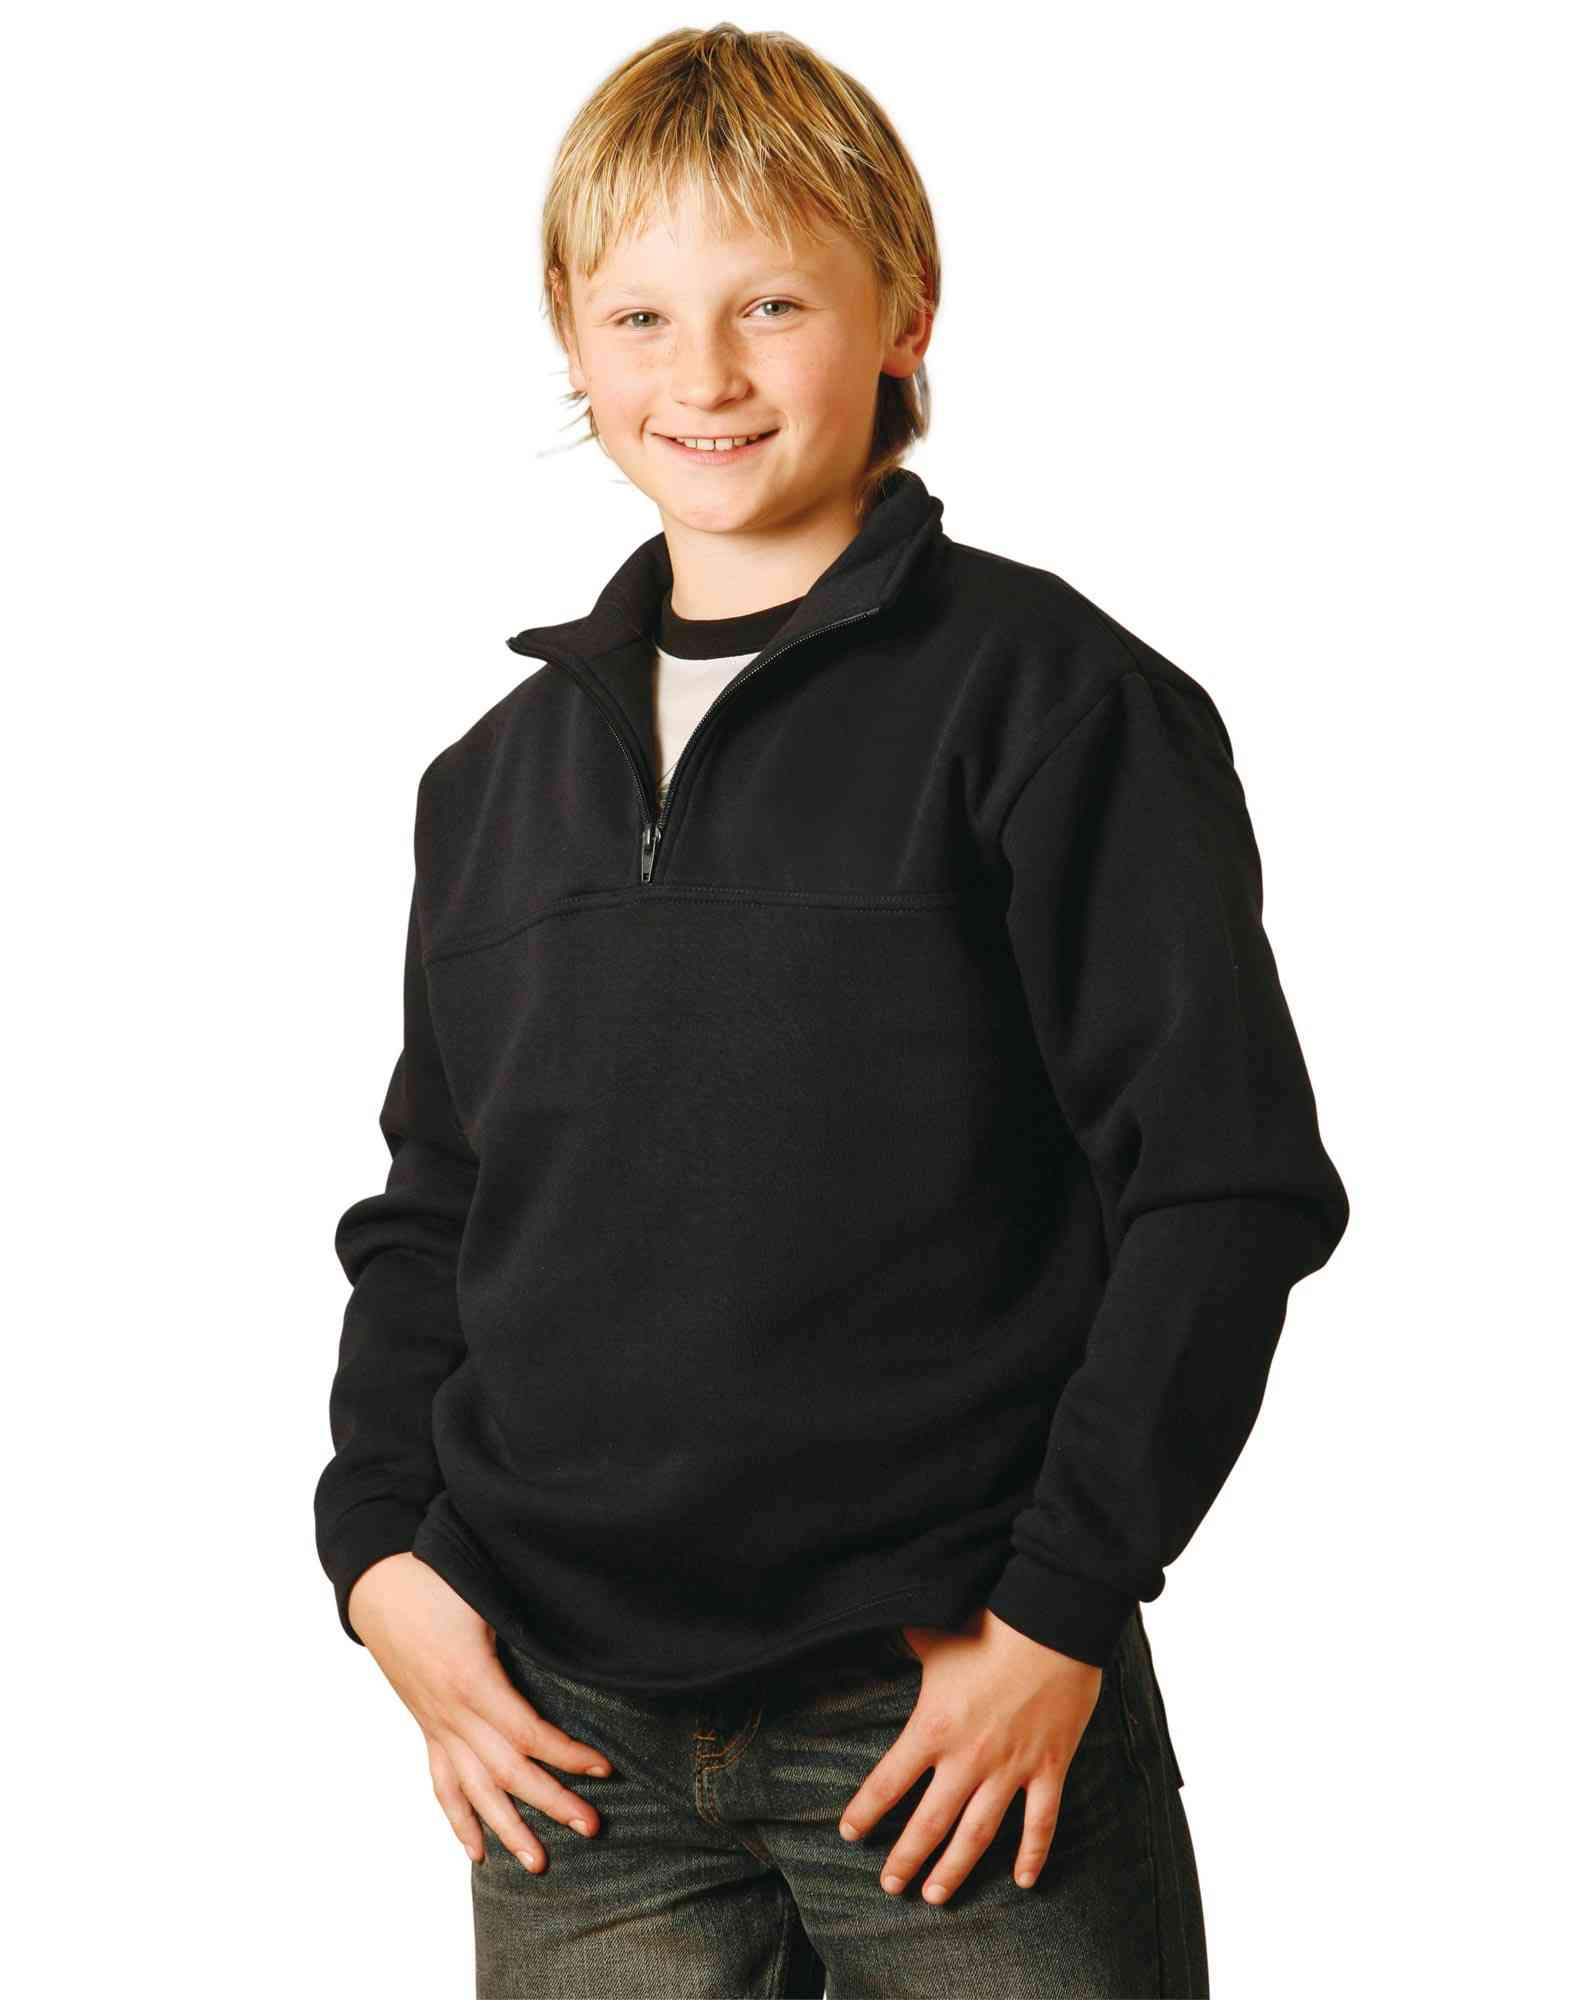 FL02K FALCON Sweat Top Kids03 08 2015 07 54 45 - FL02K FALCON Sweat Top Kids